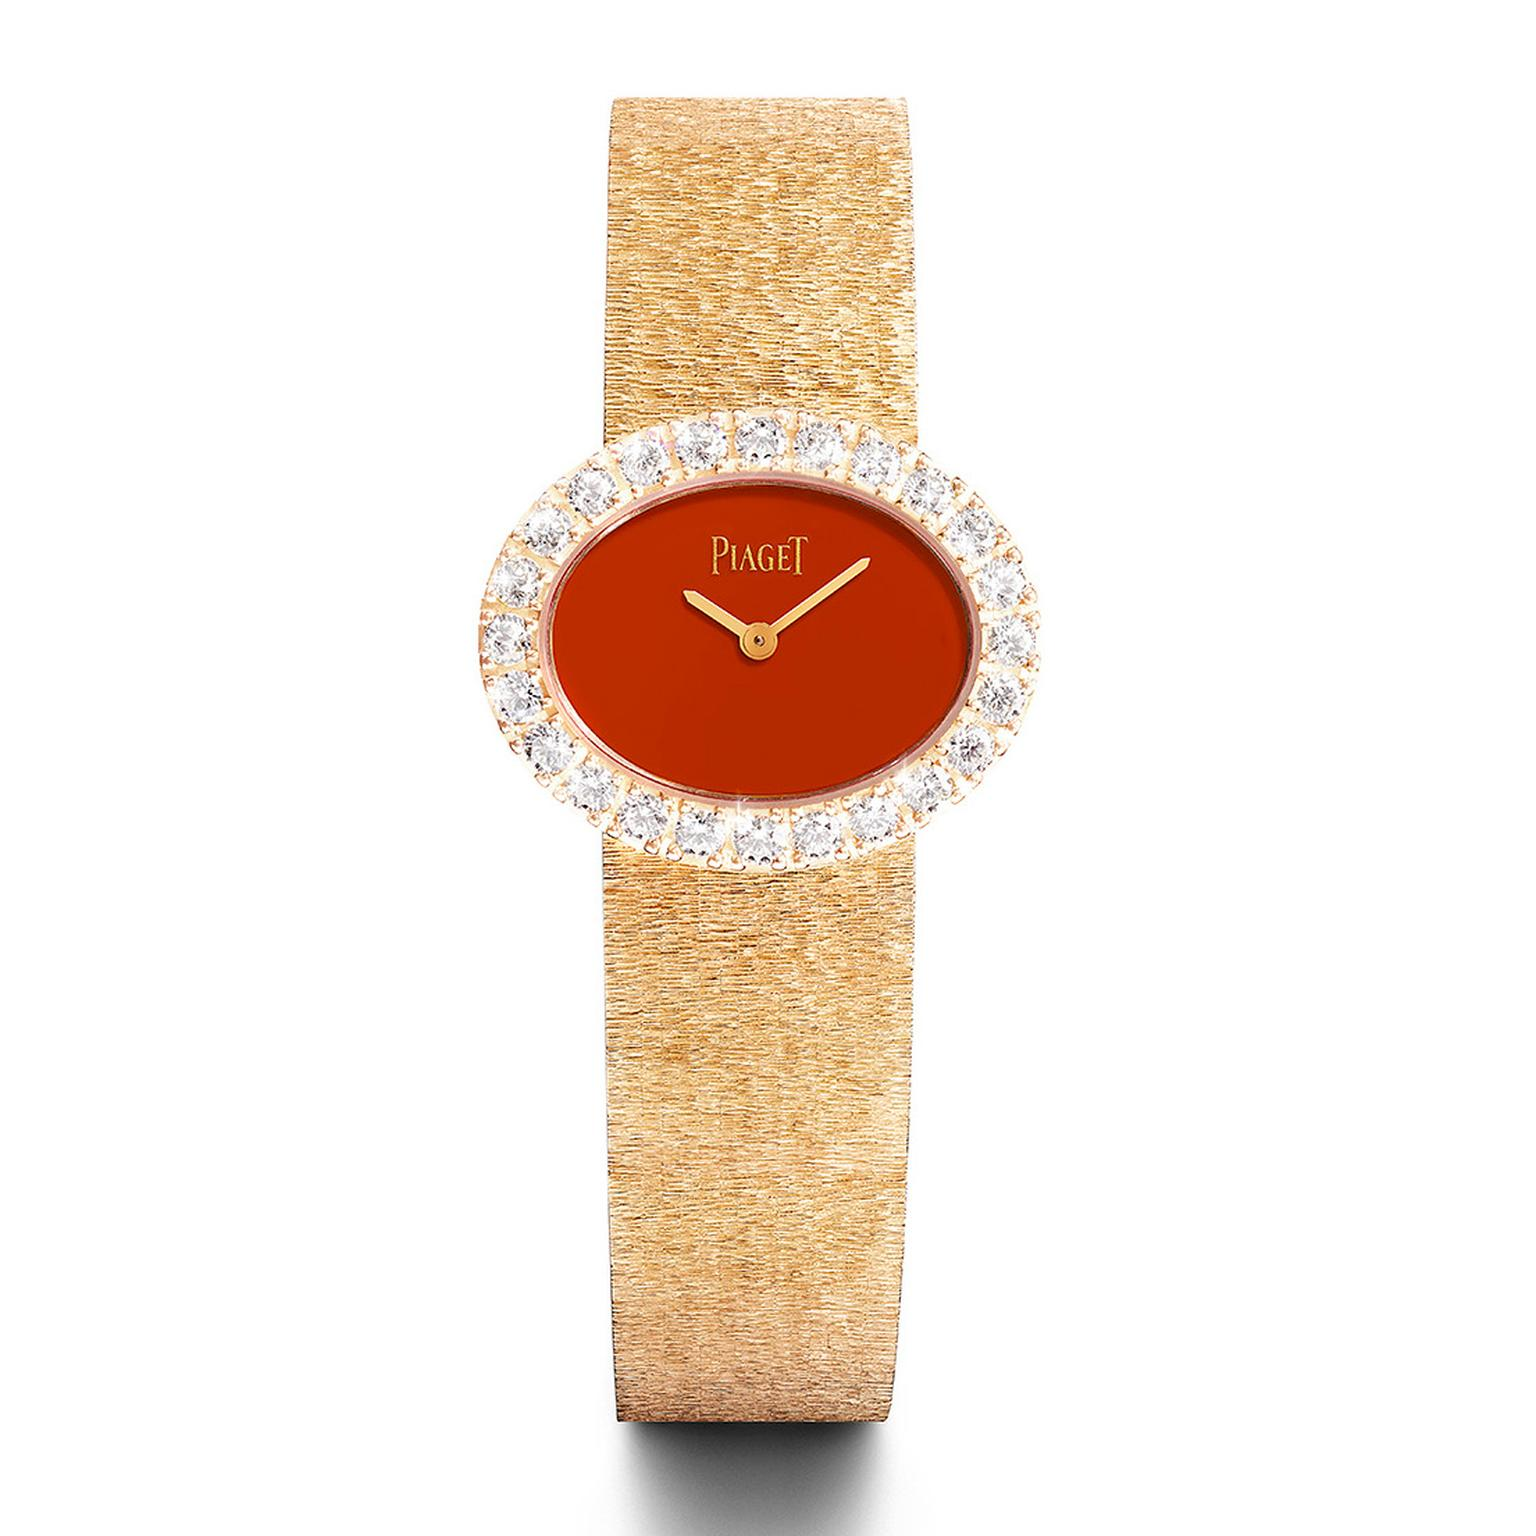 Piaget gold and diamond watch with red cornelian dial